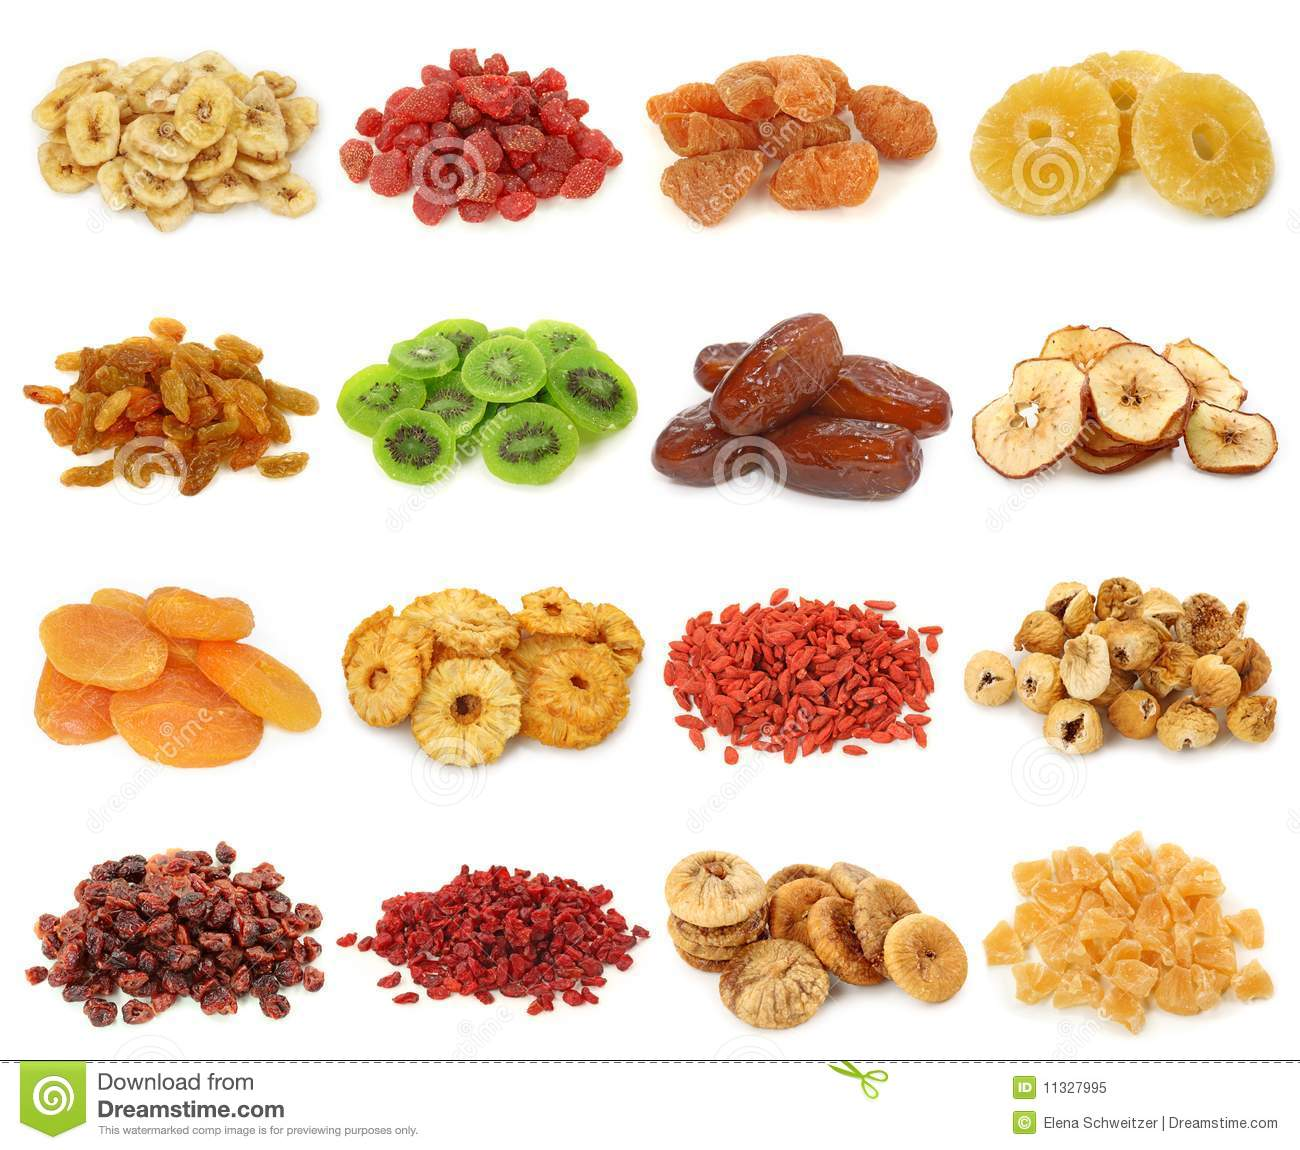 Dried fruits collectio